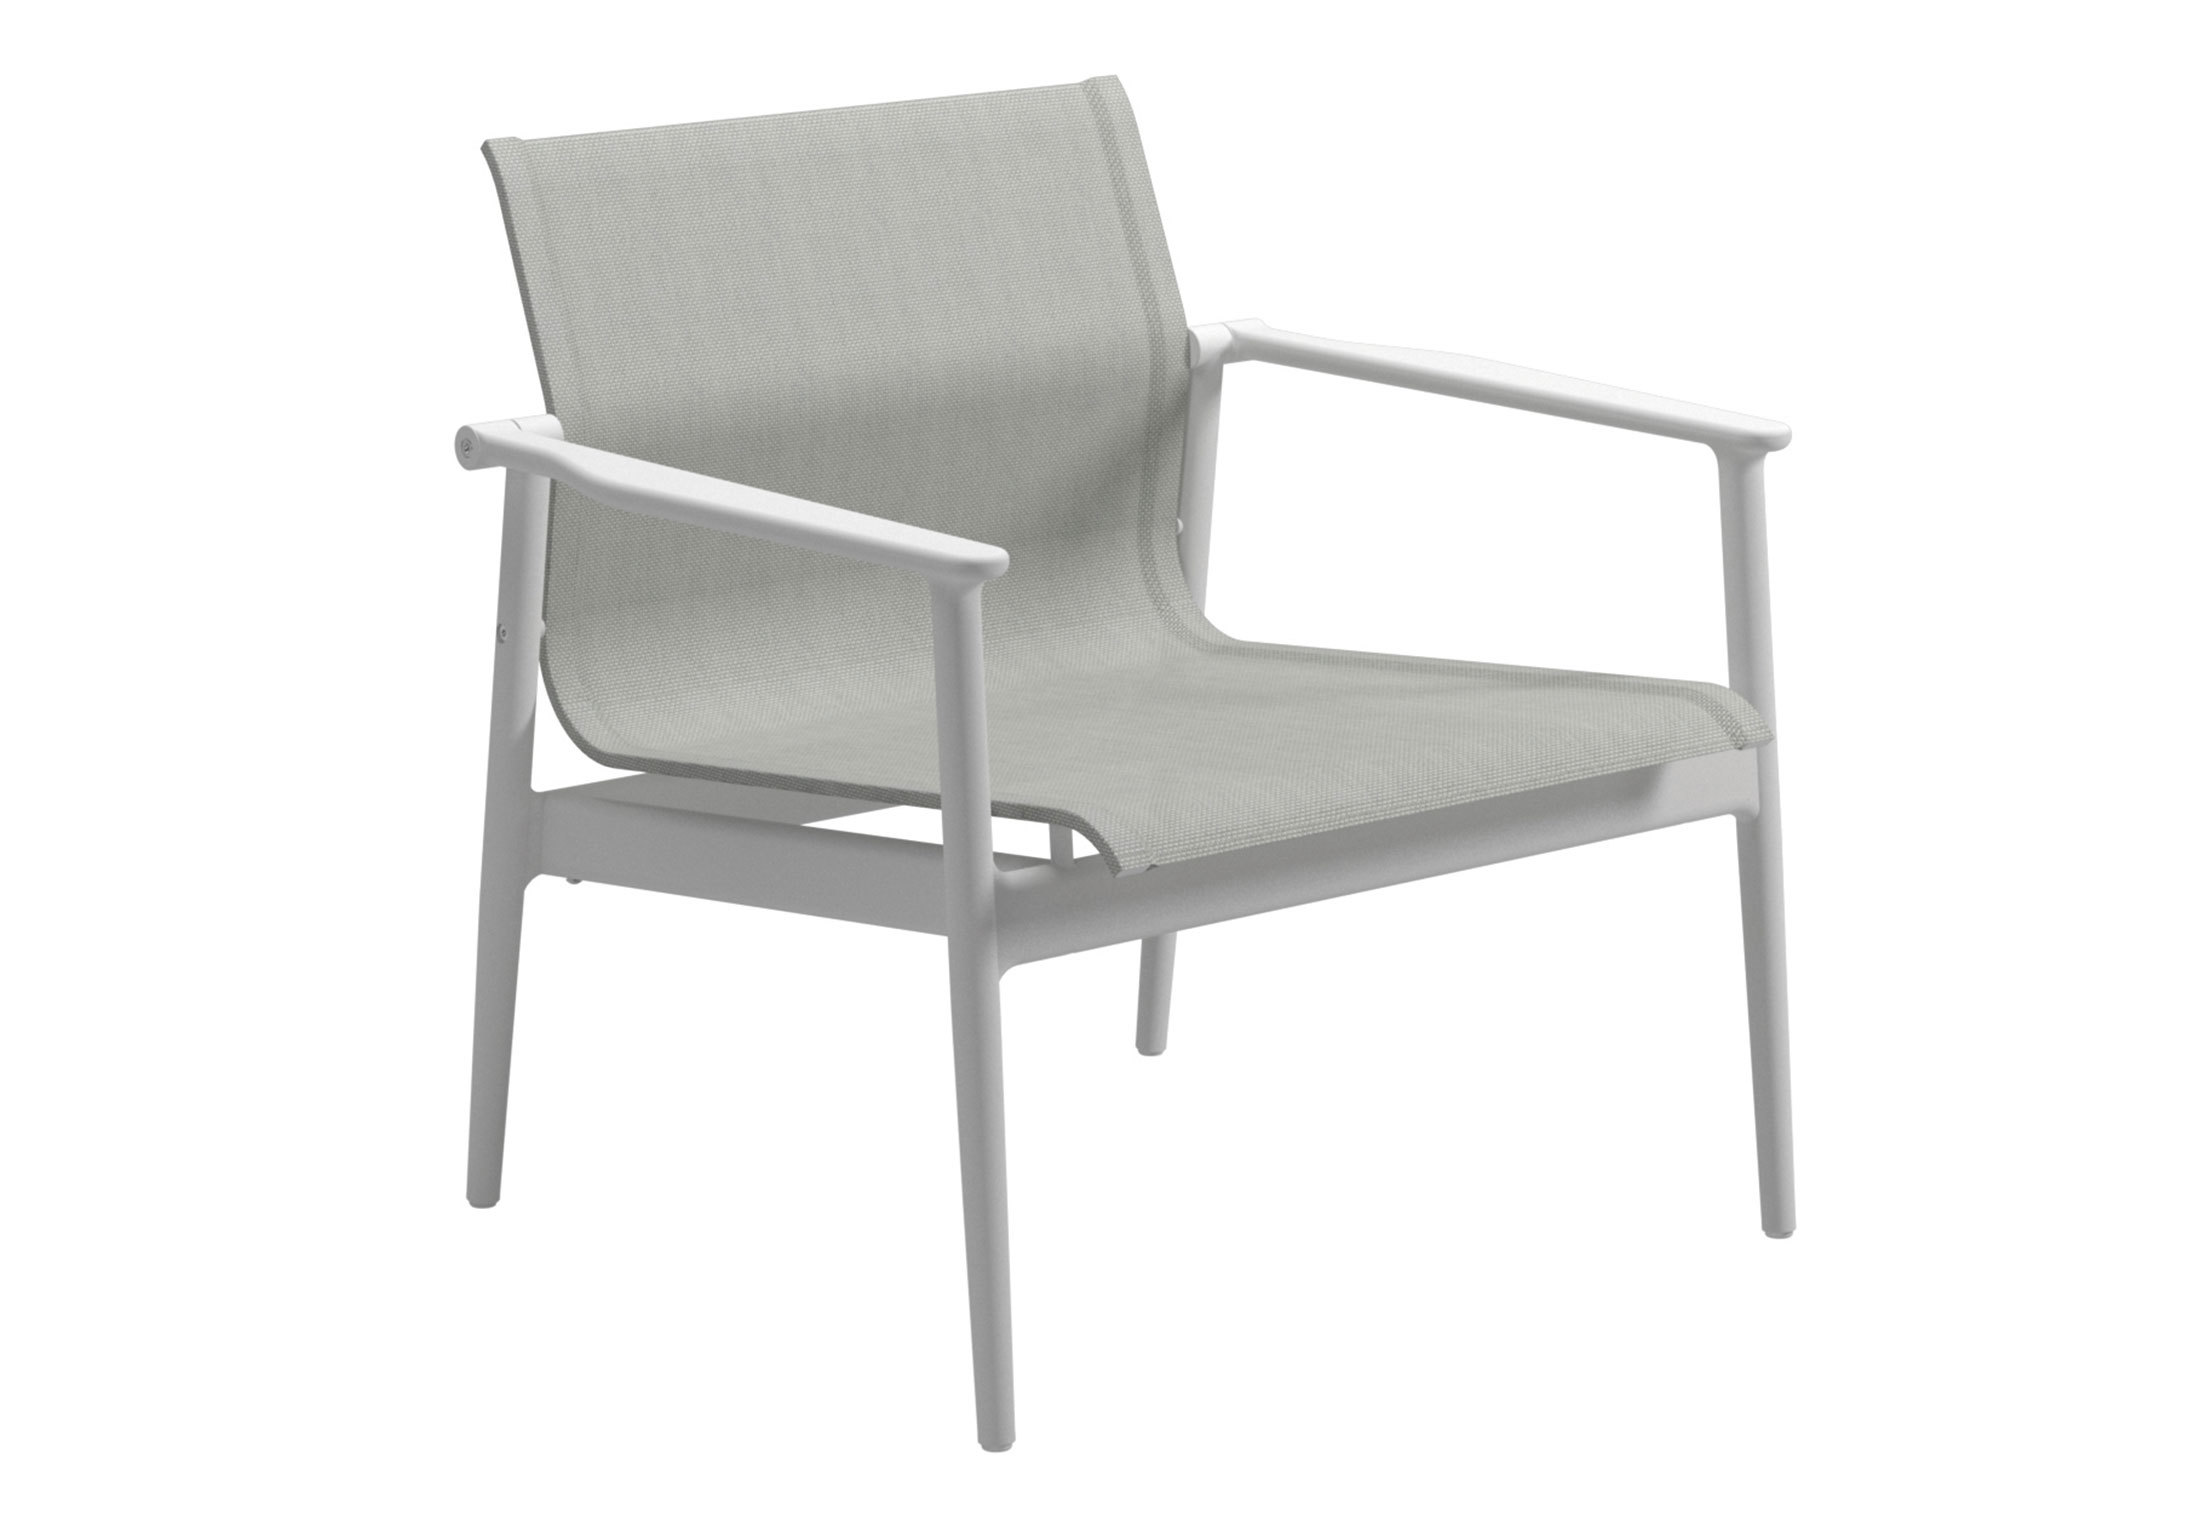 180 Stacking Lounge Chair By Gloster Furniture Stylepark